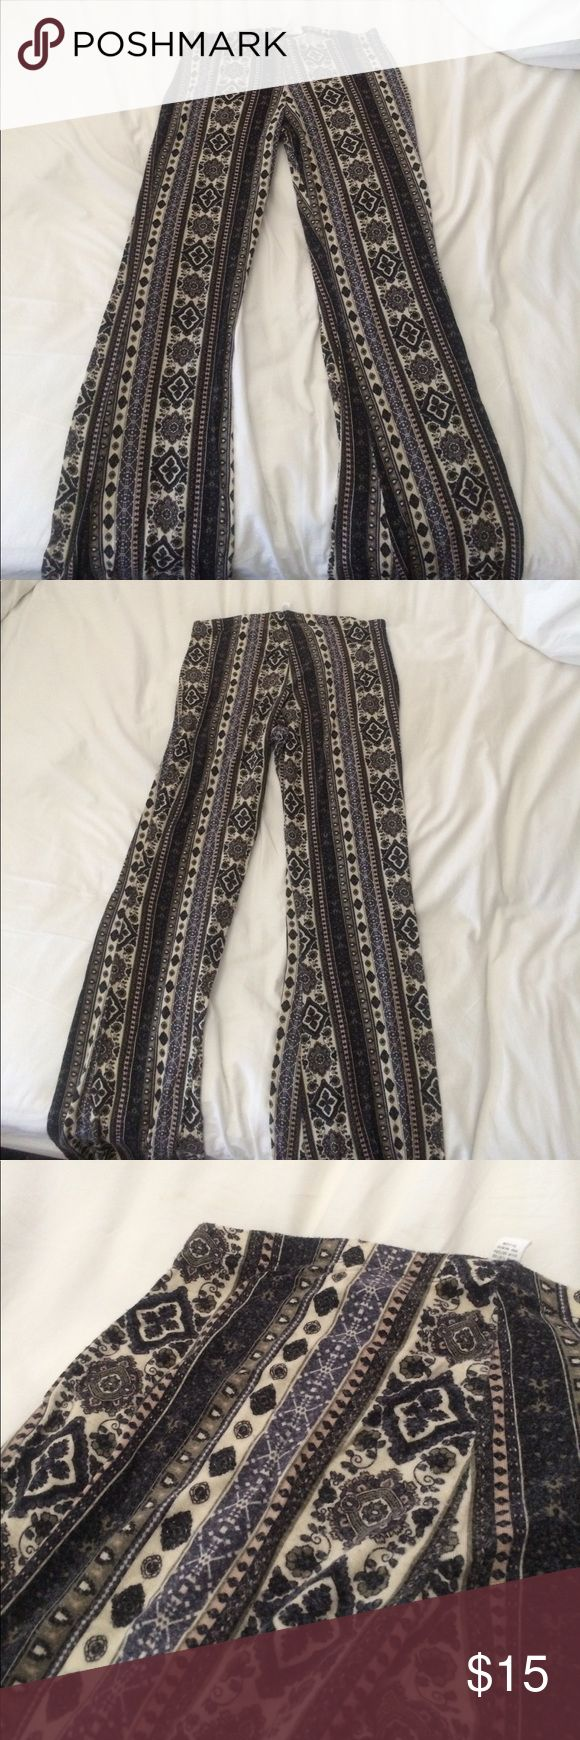 hipster pants very stylish hipster pants with a fun pattern. they are super comfy and flattering. Full Tilt Pants